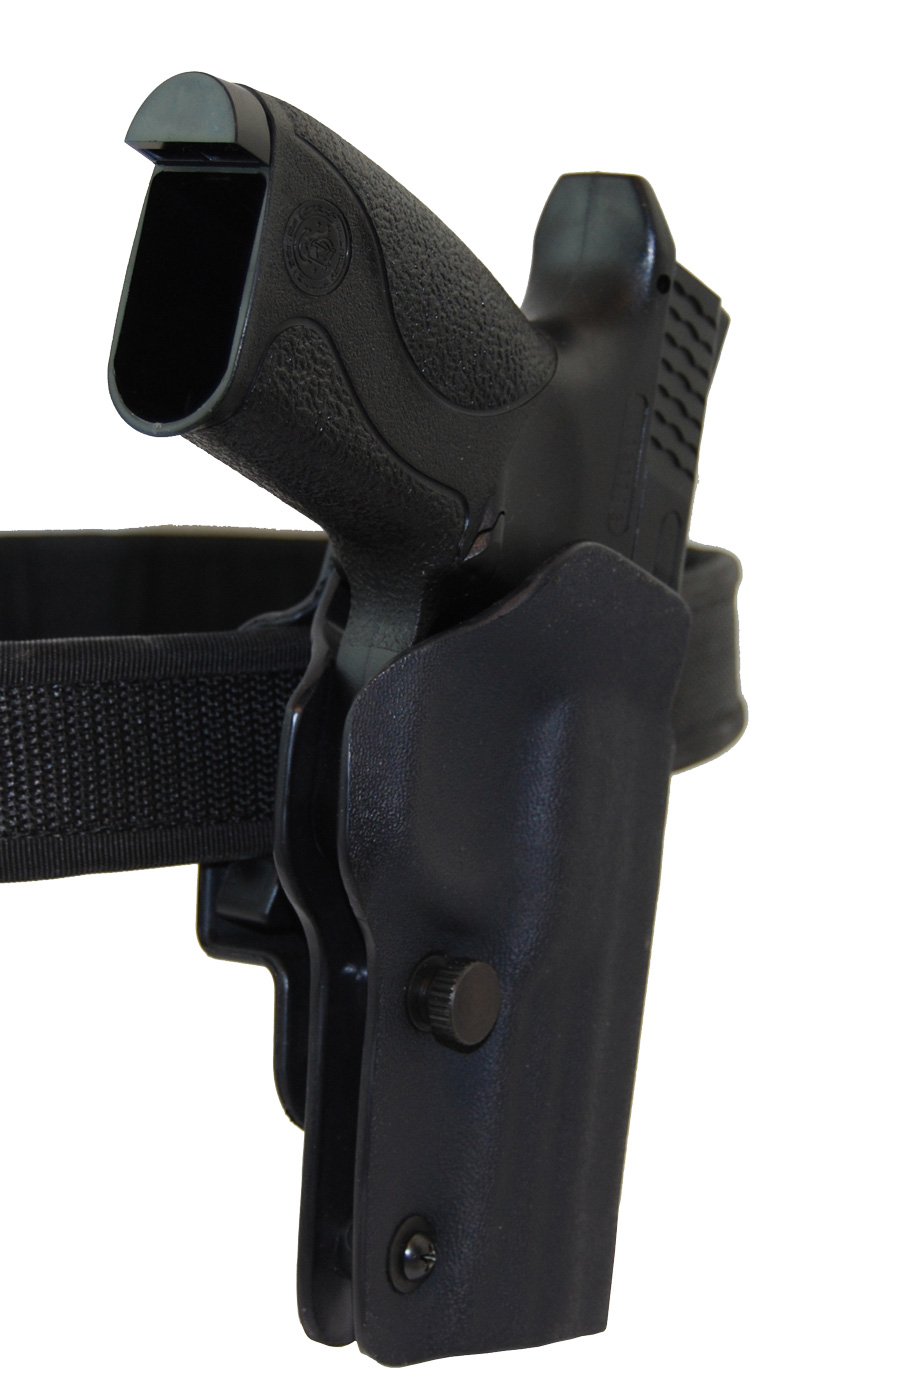 IDPA PDR-PRO Holster for IDPA